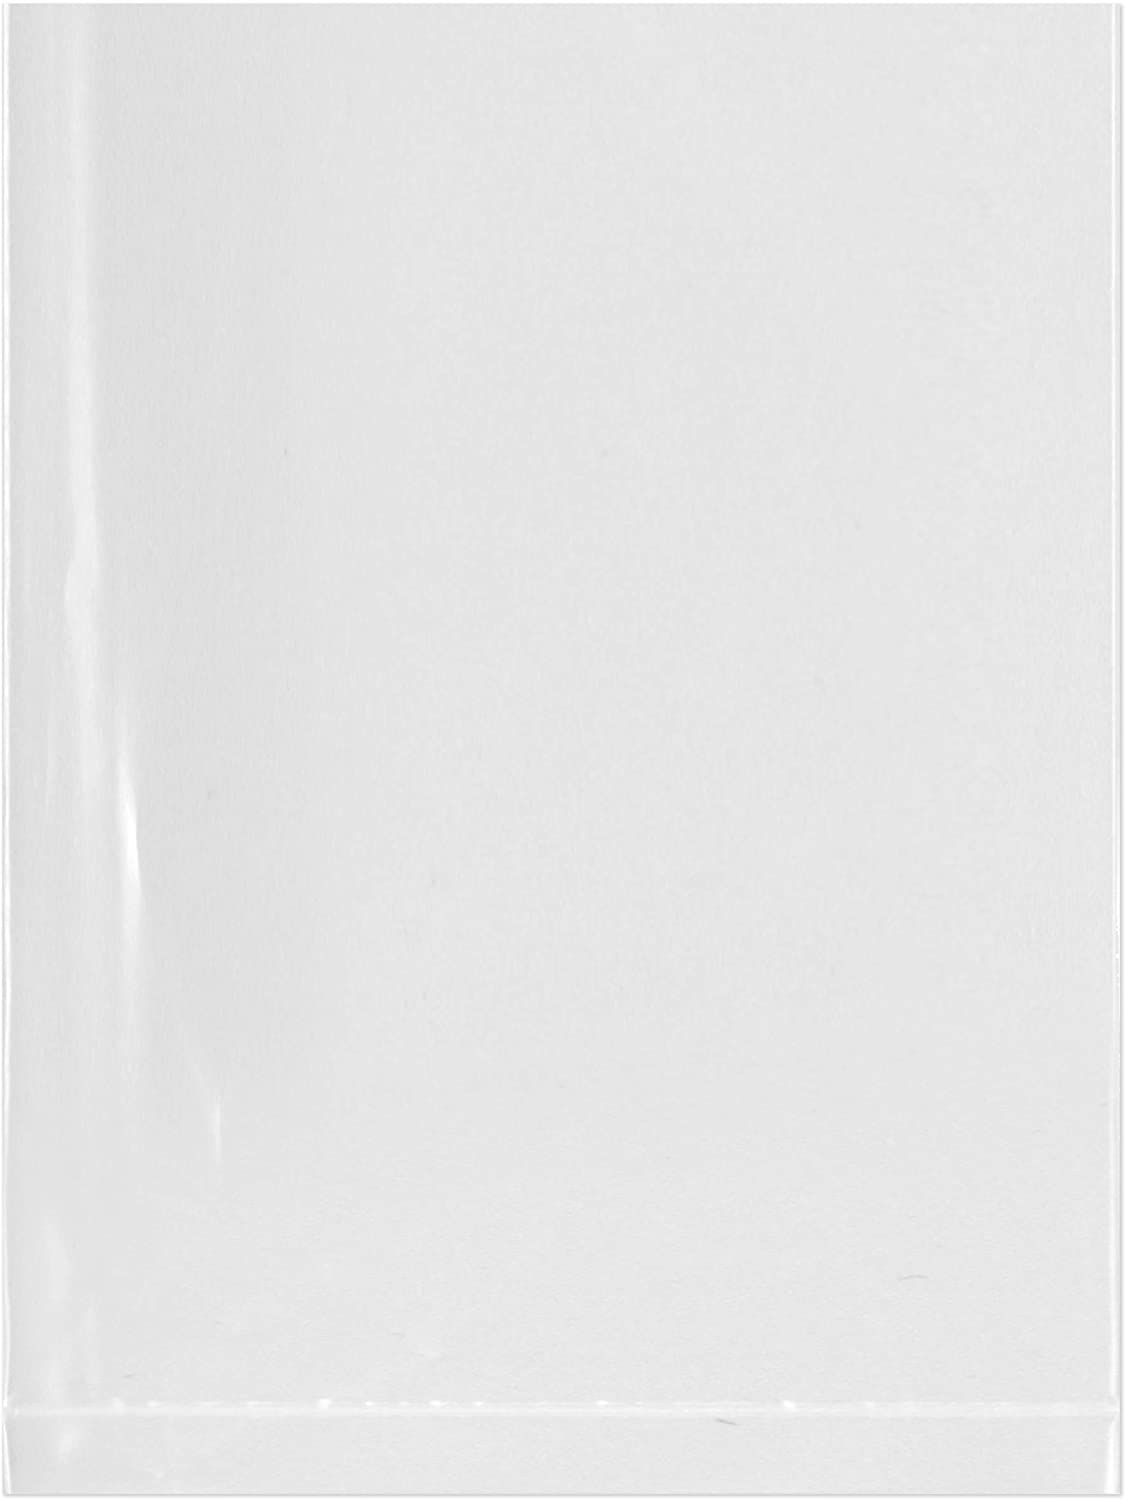 Plymor Flat Open Clear Plastic Poly Bags, 2 Mil, 3